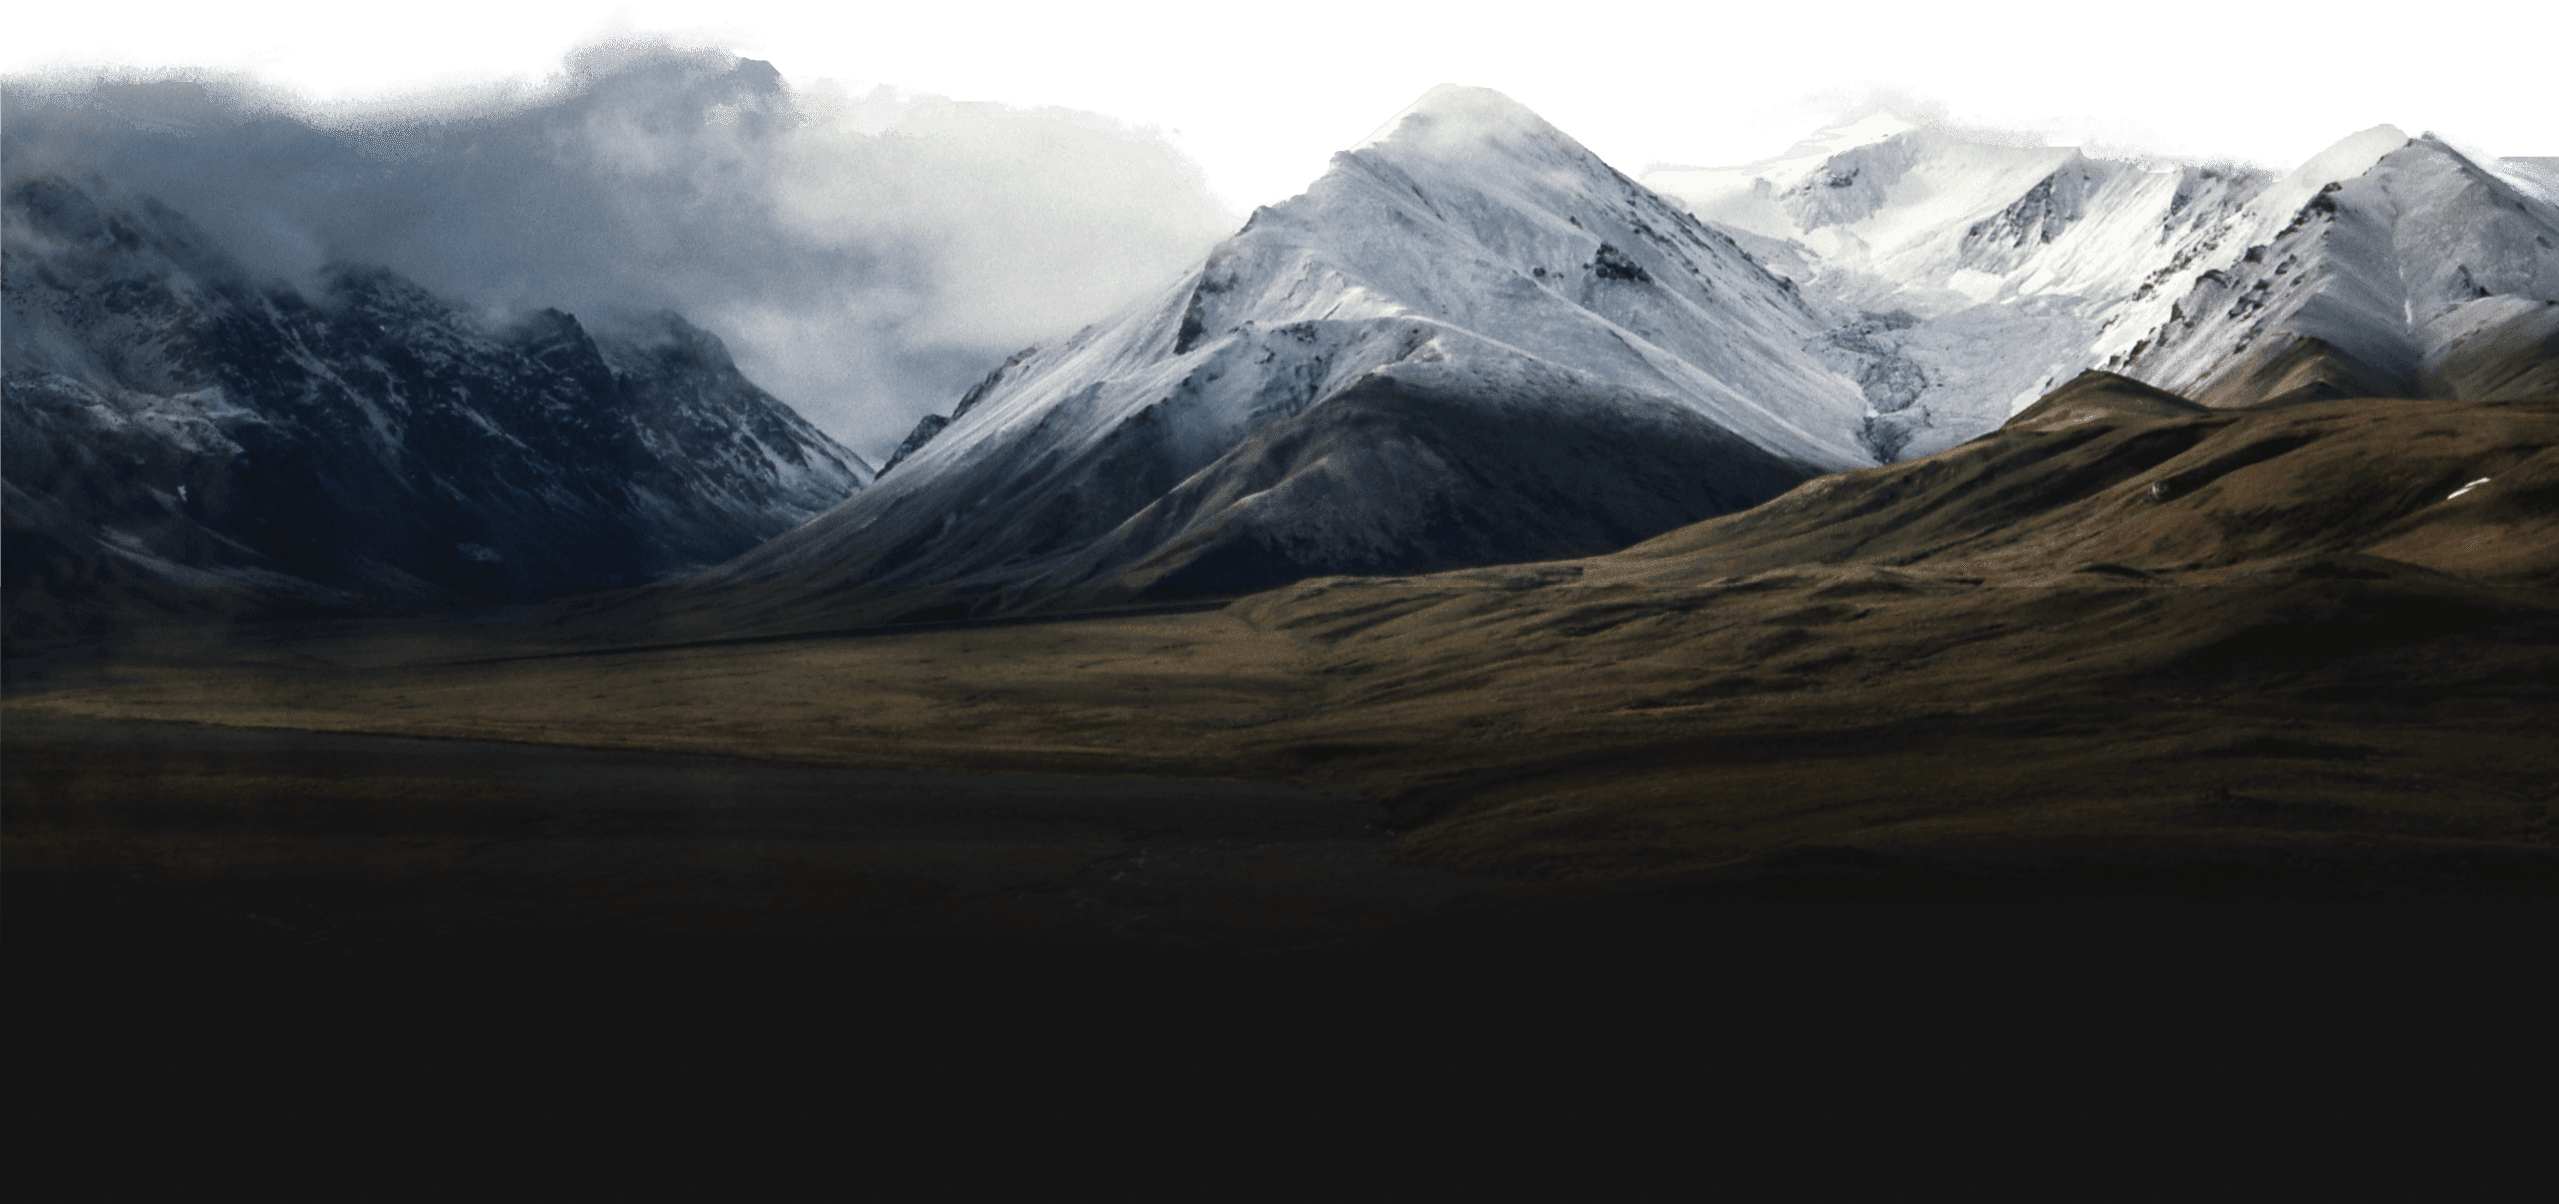 Rolling hills leading into snow capped mountains